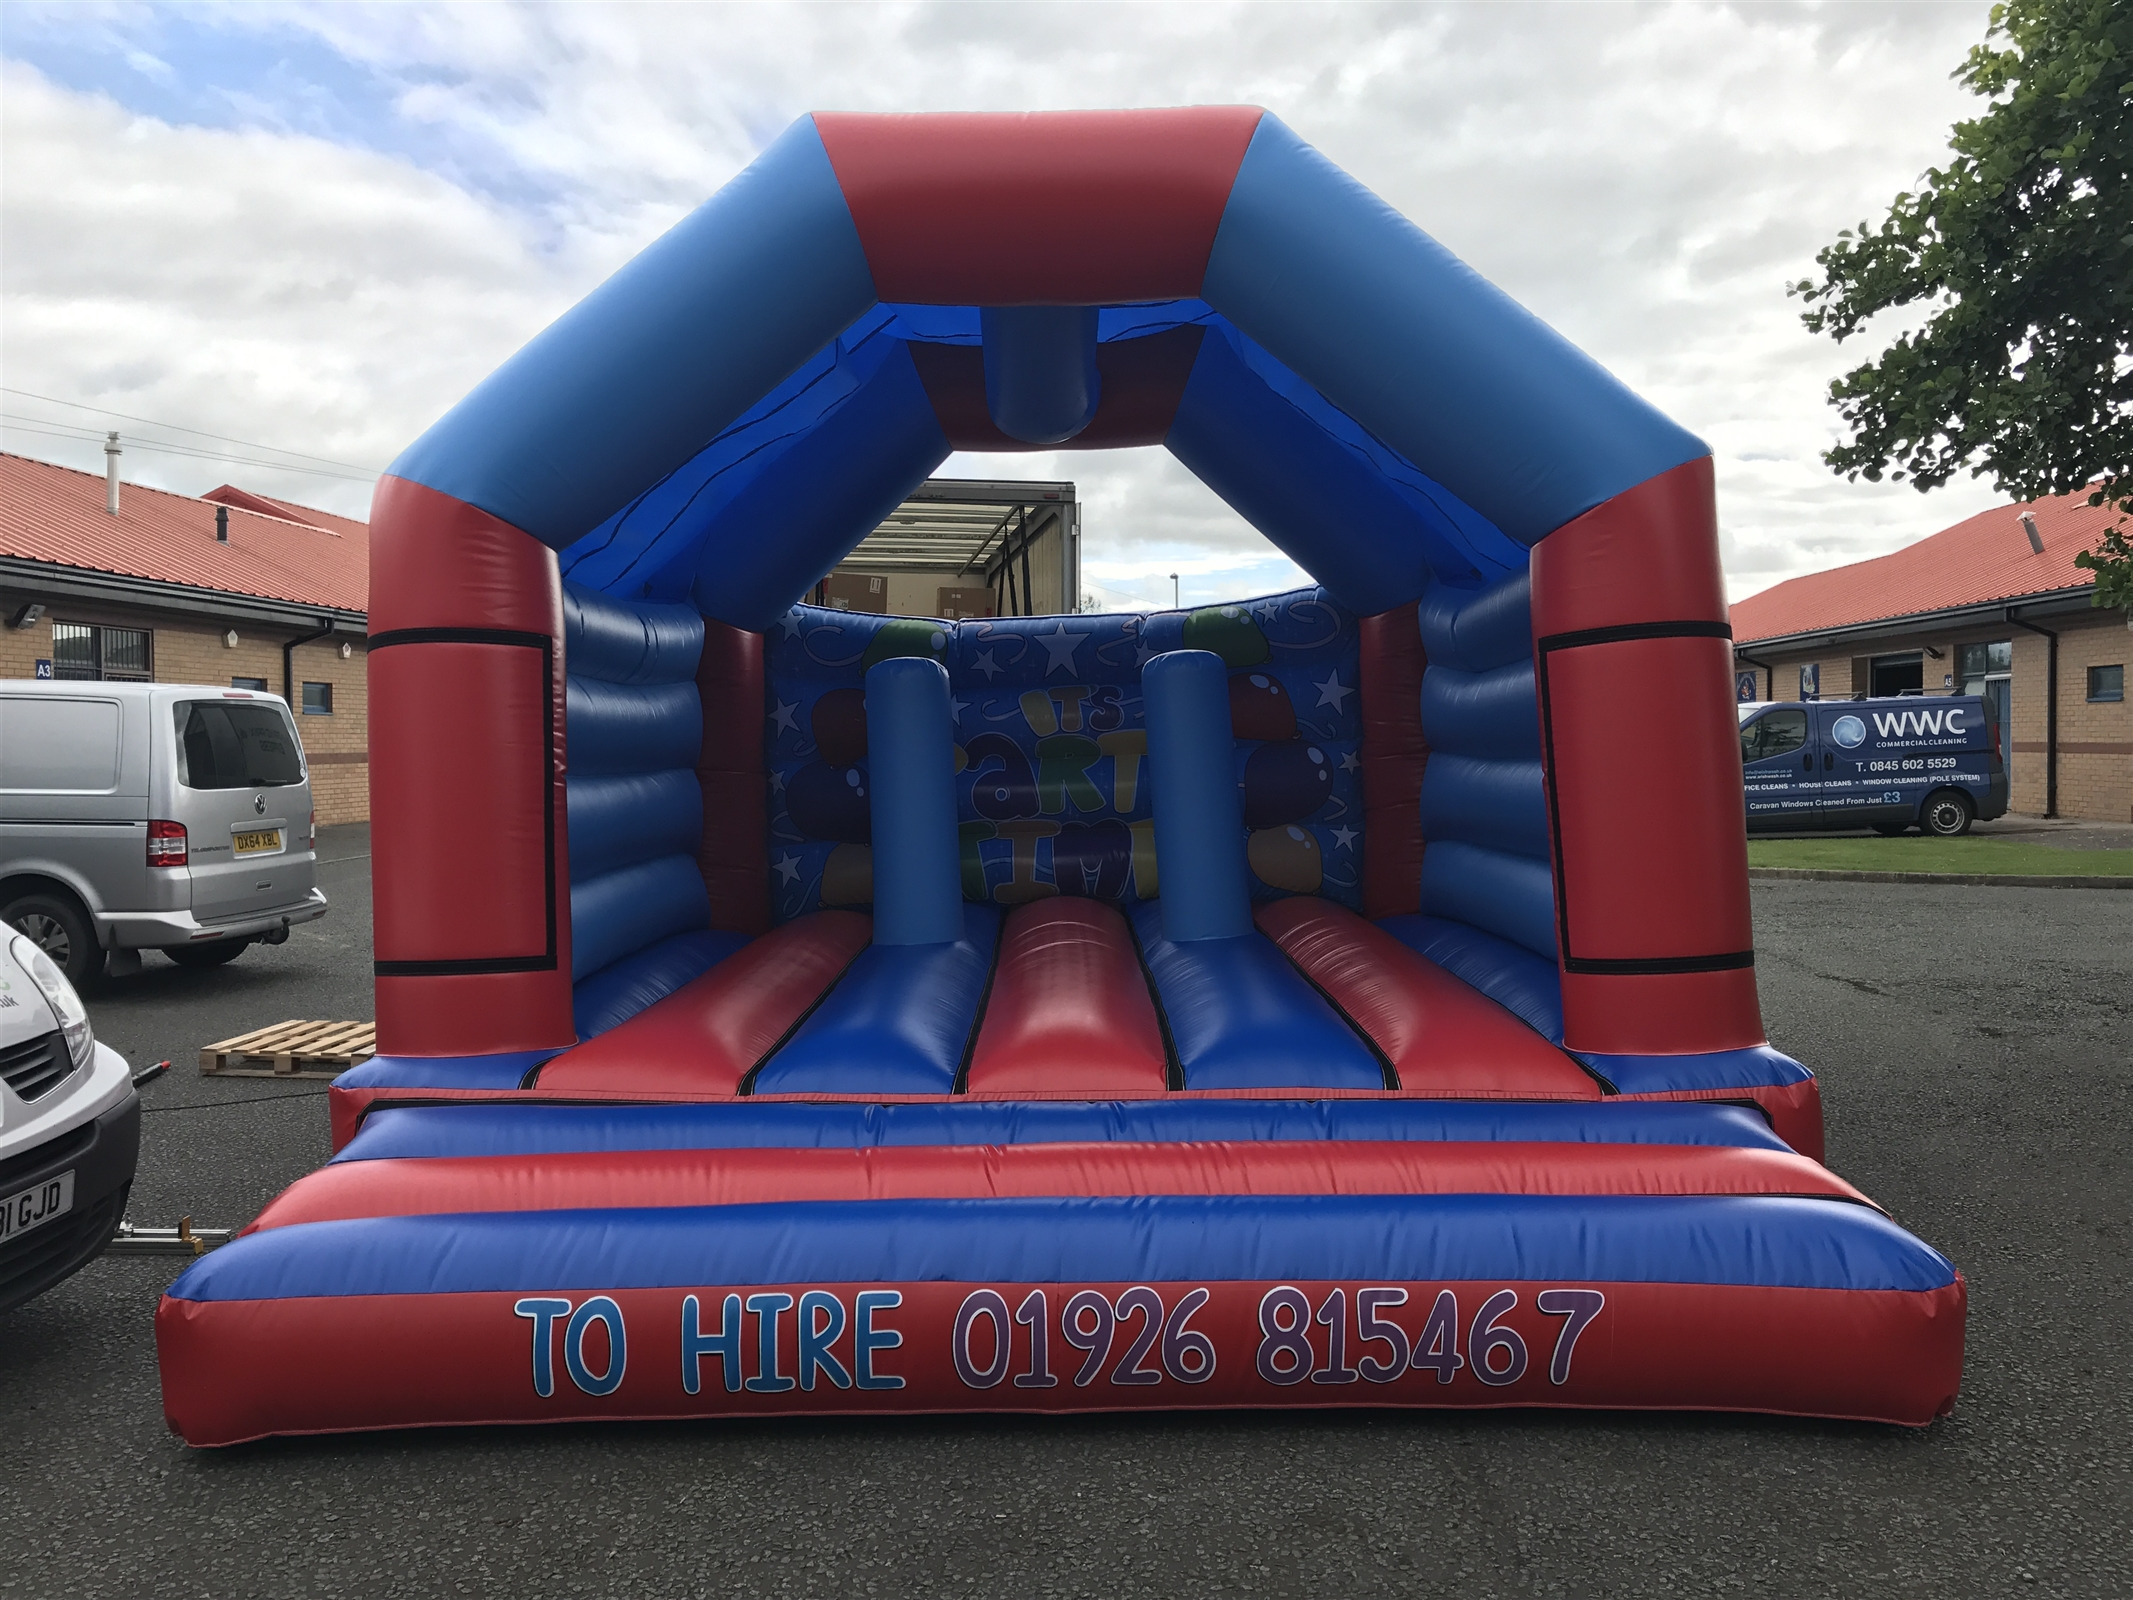 19 x 17 ft Bish Bash Castle Various Themes available! - Bouncy Castle Hire  in Southam, Leamington Spa, Warwick, Stratford-Upon-Avon, Kenilworth, Rugby